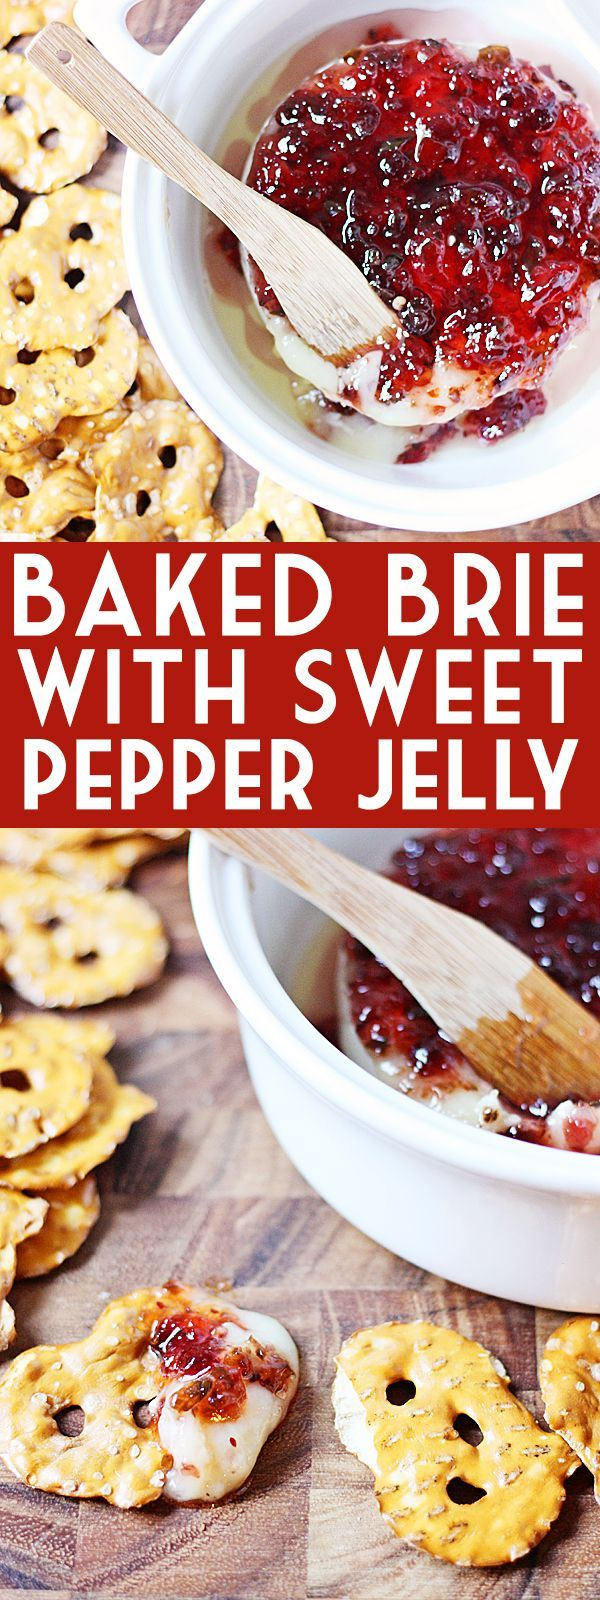 Baked Brie with Sweet Pepper Jelly -- Baked brie with sweet pepper jelly makes for the most melty, cheesy, peppery, sweet appetizer. Serve with your favorite crackers for the perfect appetizer! | isthisreallymylife.com